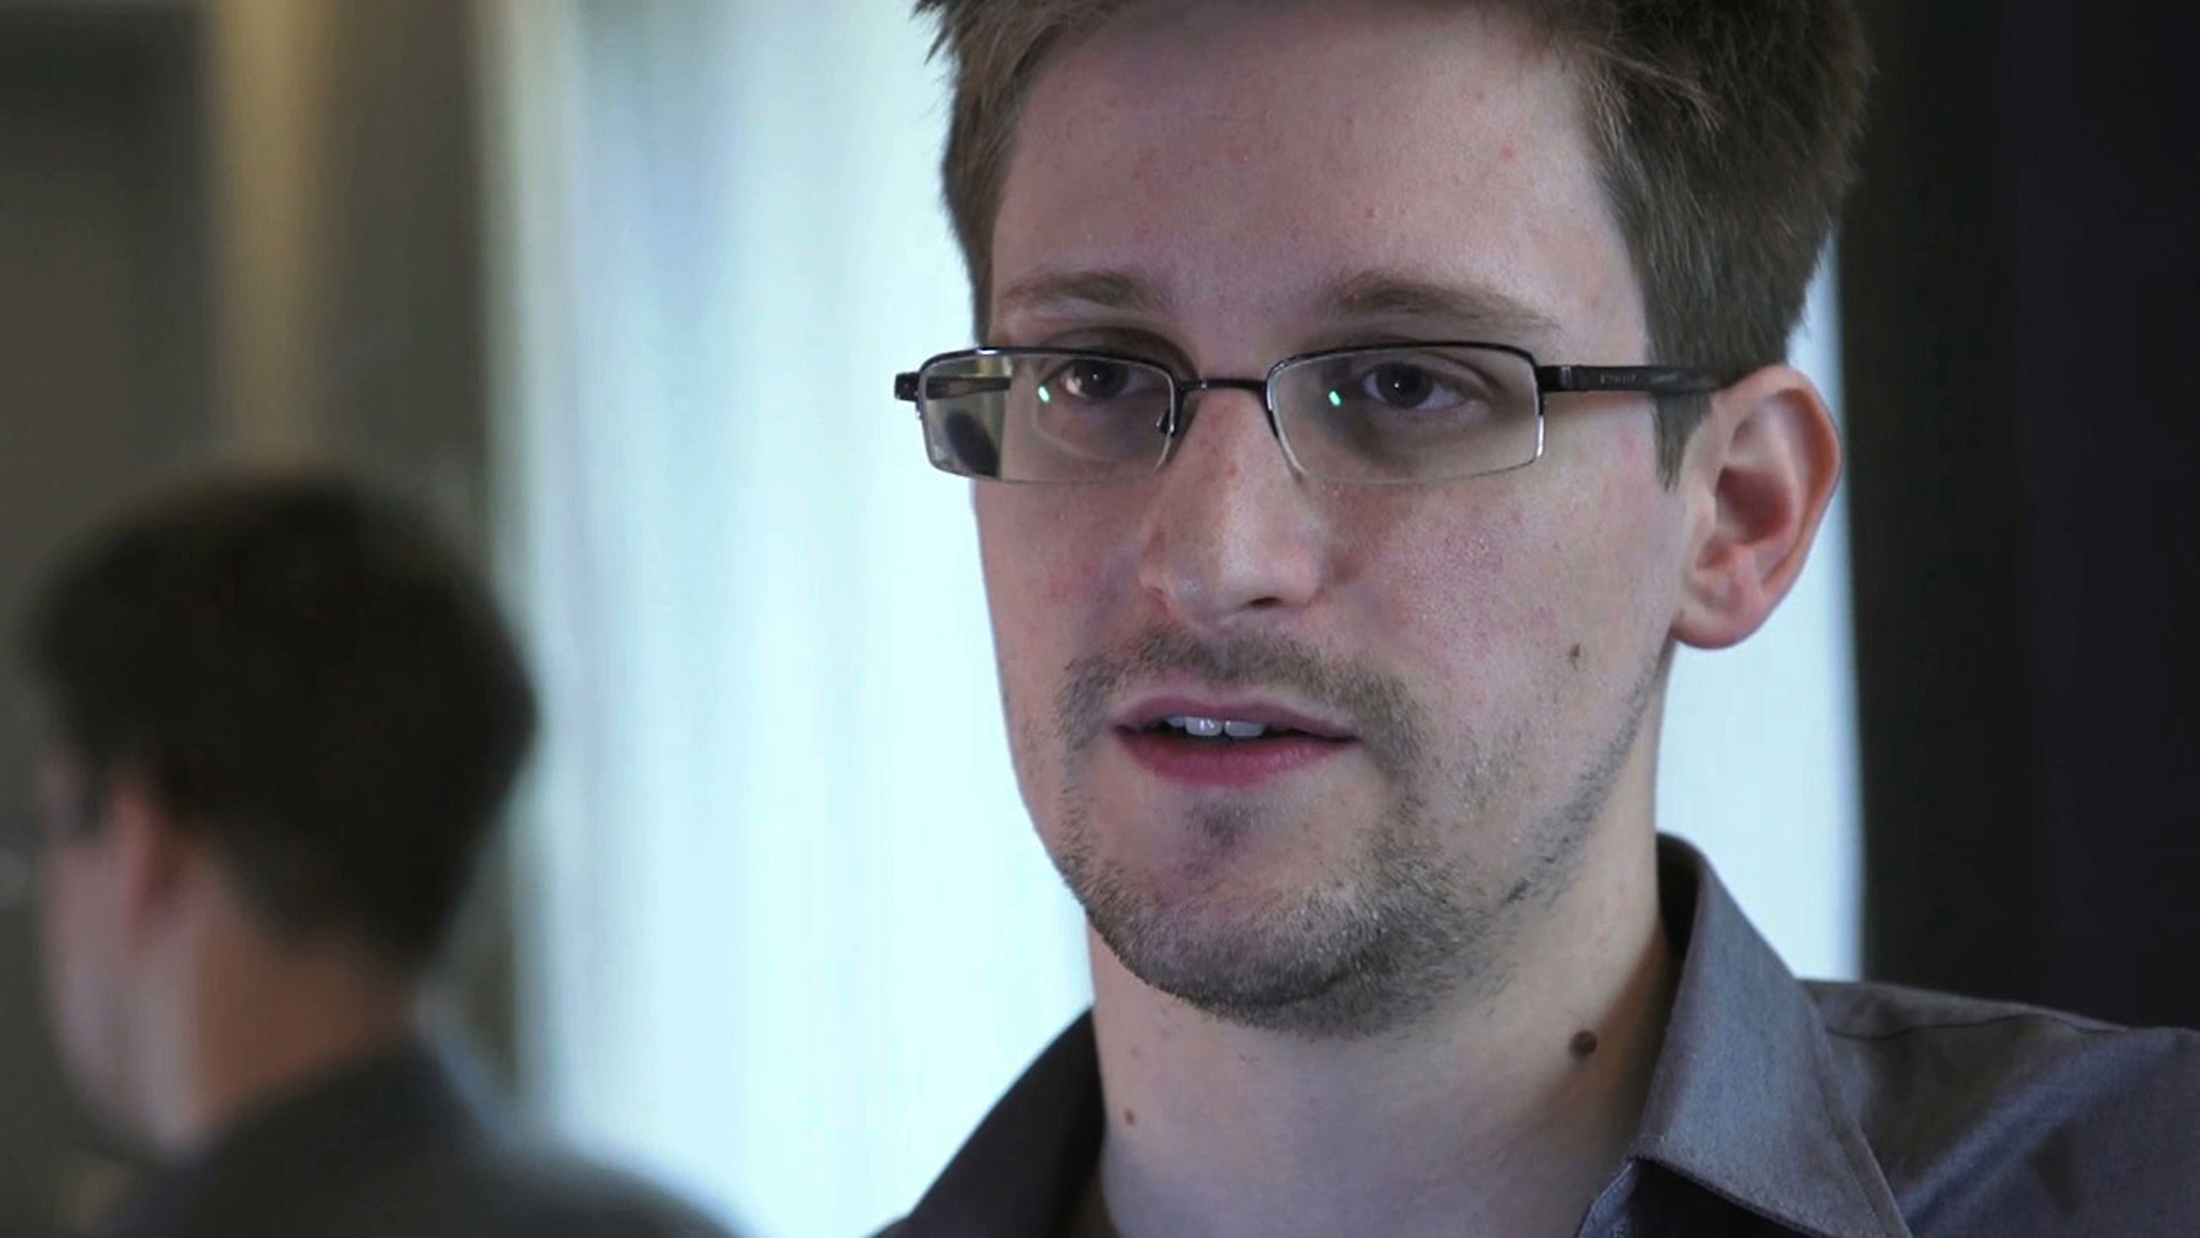 Edward Snowden is seen in this still image taken from video during an interview by The Guardian in his hotel room in Hong Kong, on June 6, 2013.